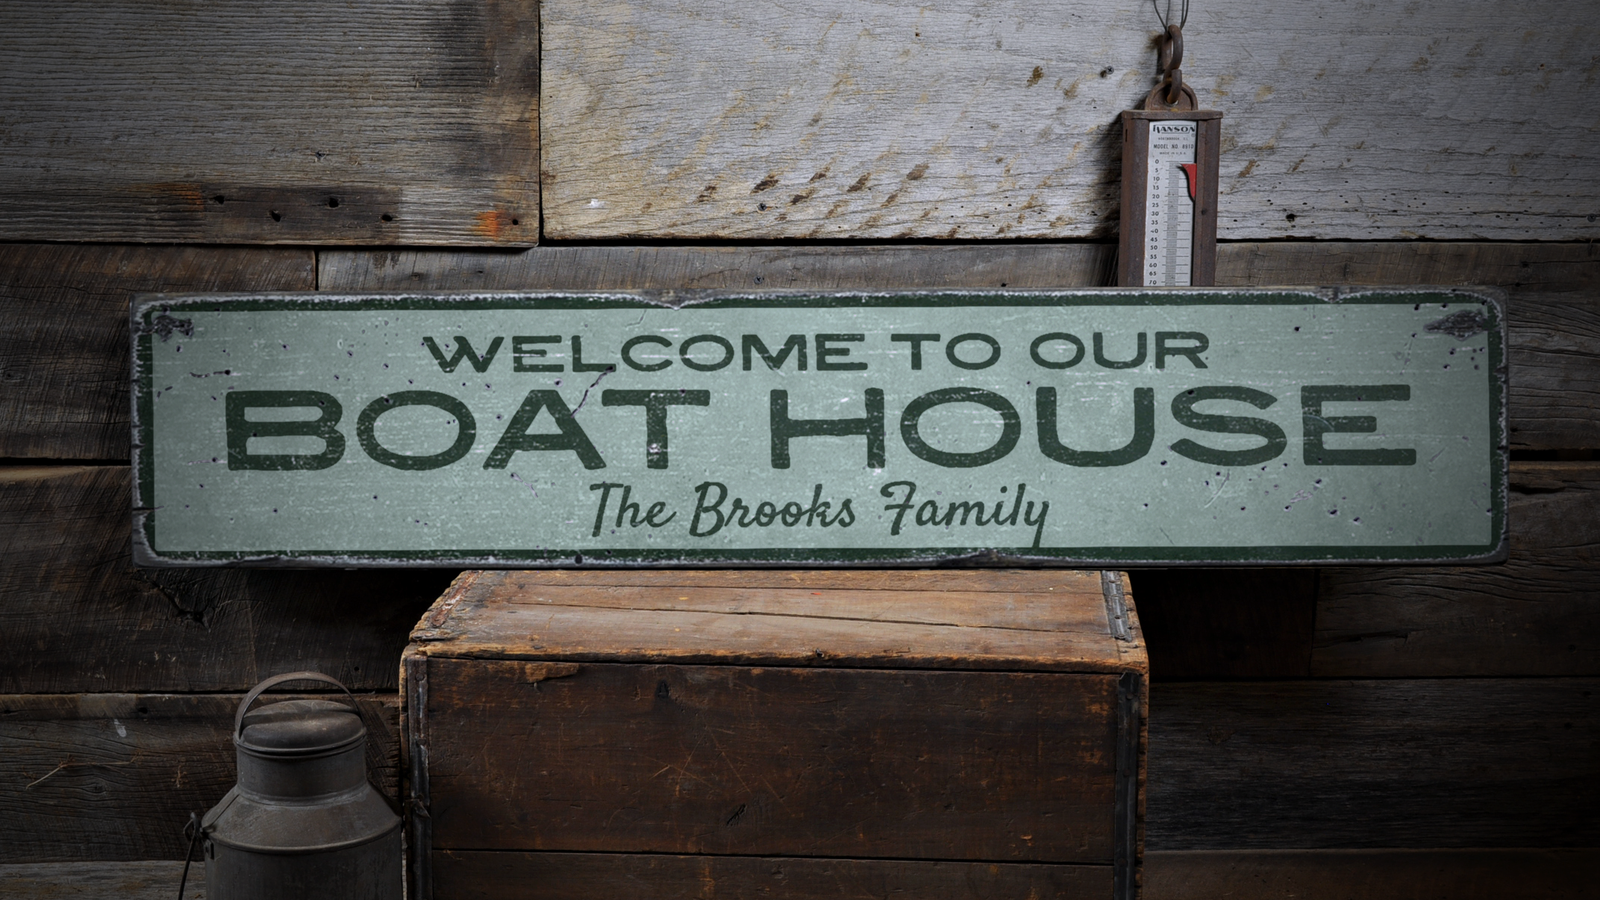 Boat House, Boat, Boat House, Boat - Rustic Distressed Wood Sign ENS1001795